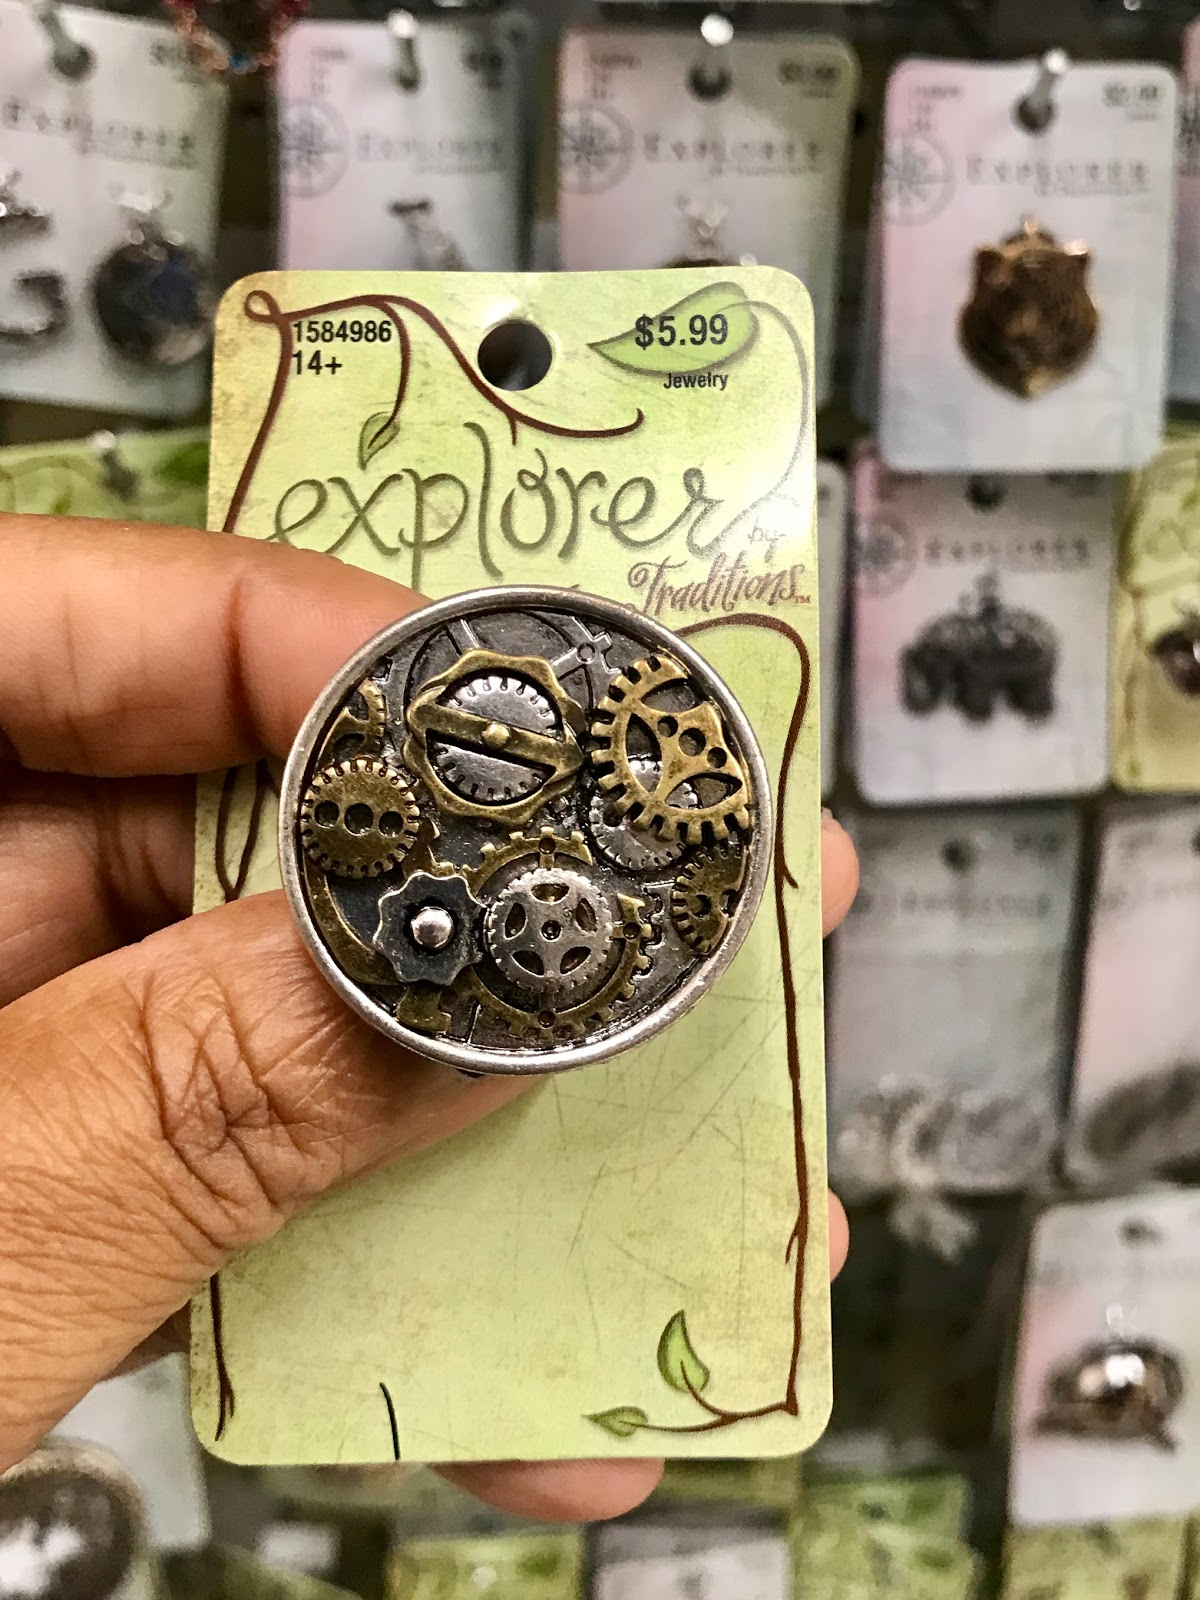 Explorer mix metal rings and jewelry sold at Hobby Lobby